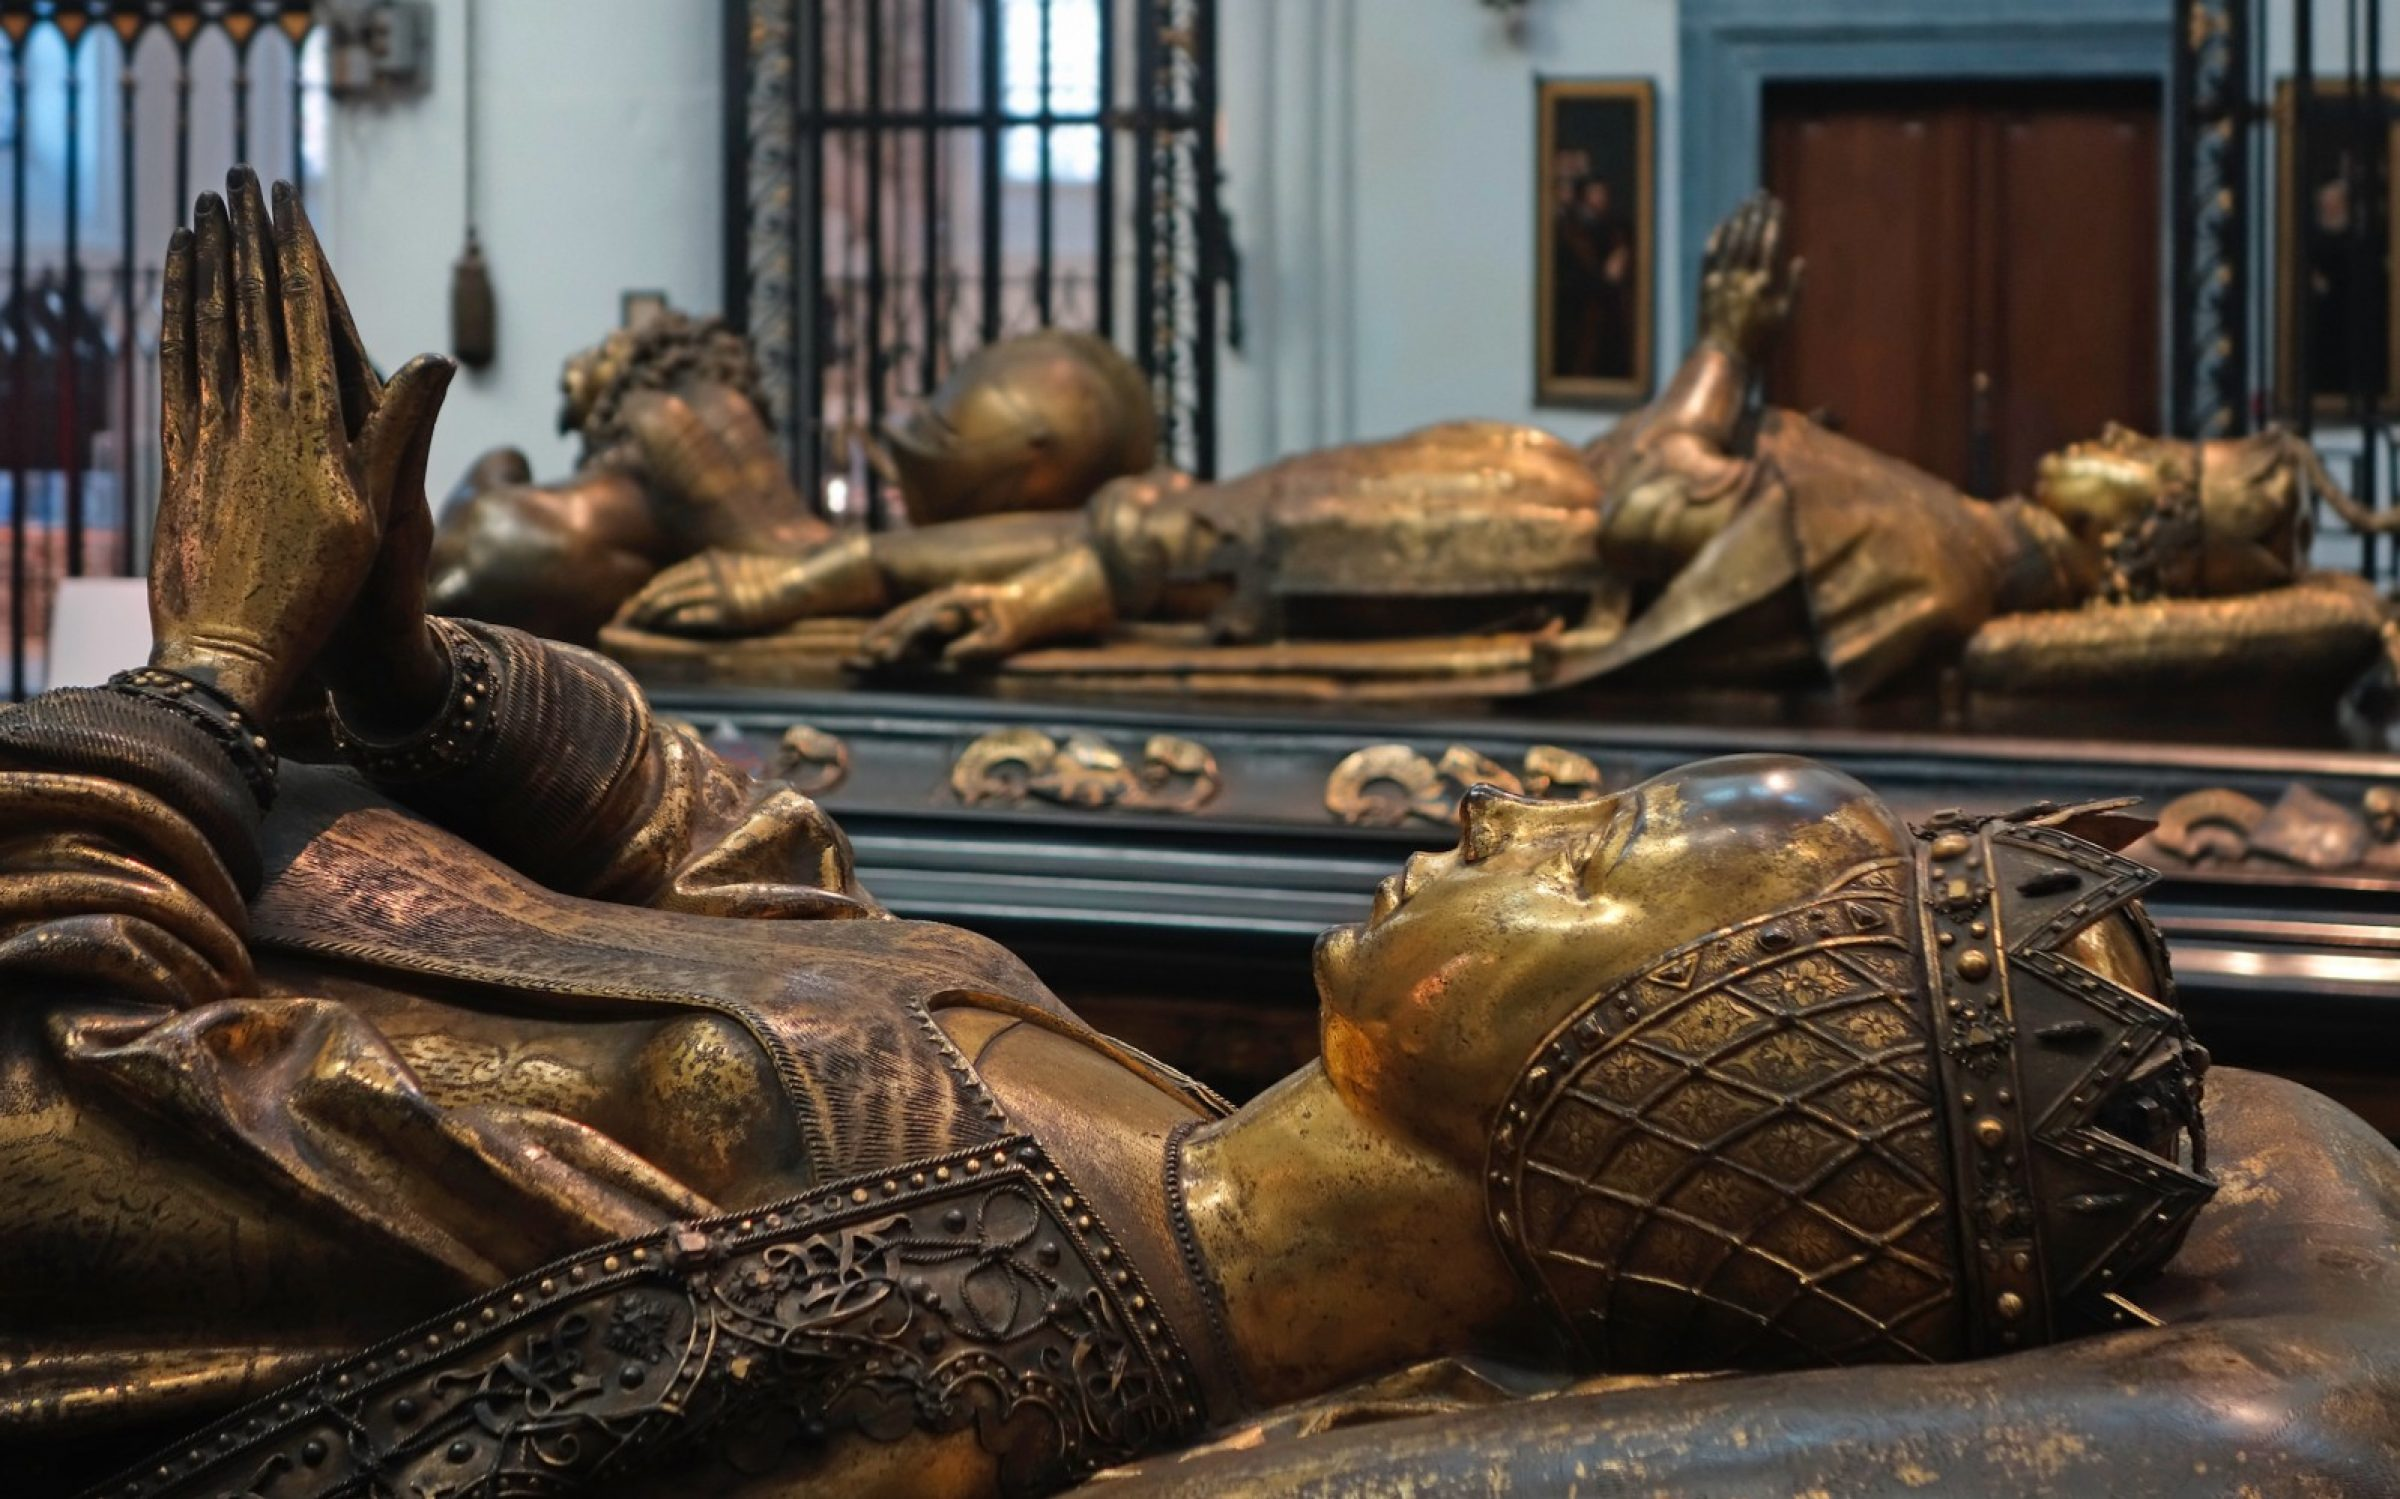 The tomb of Mary of Burgundy, beside that of her father, in the Church of Our Lady in Bruges